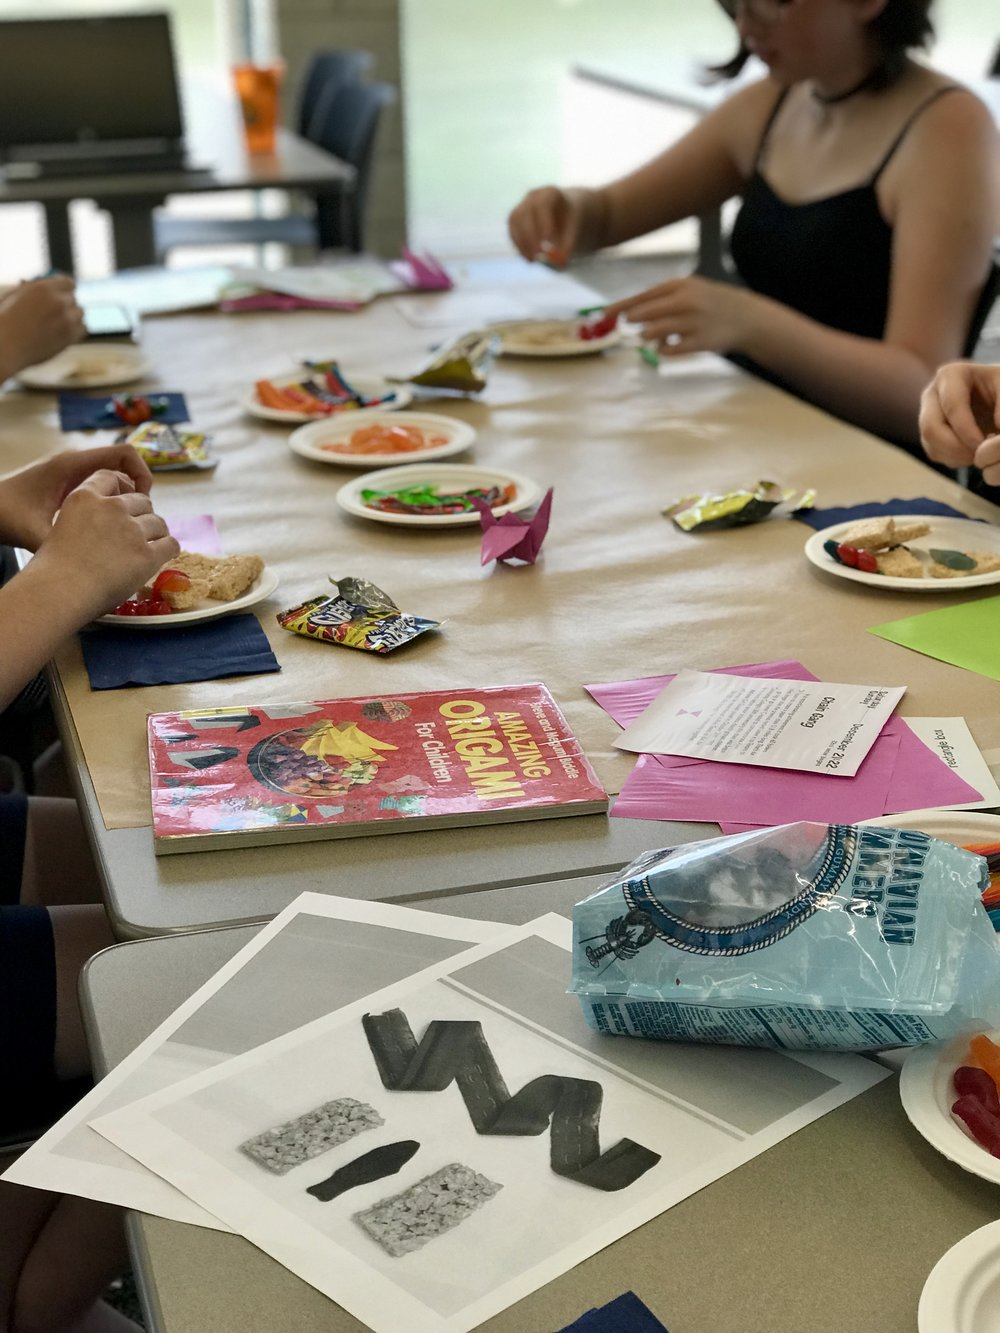 MANGA BOOK CLUB - Our first Manga Book Club was filled with book discussion, Shibori Tie Dye, sushi candy and origami. Our book selection was Anonymous Noise by Ryoko Fukuyama